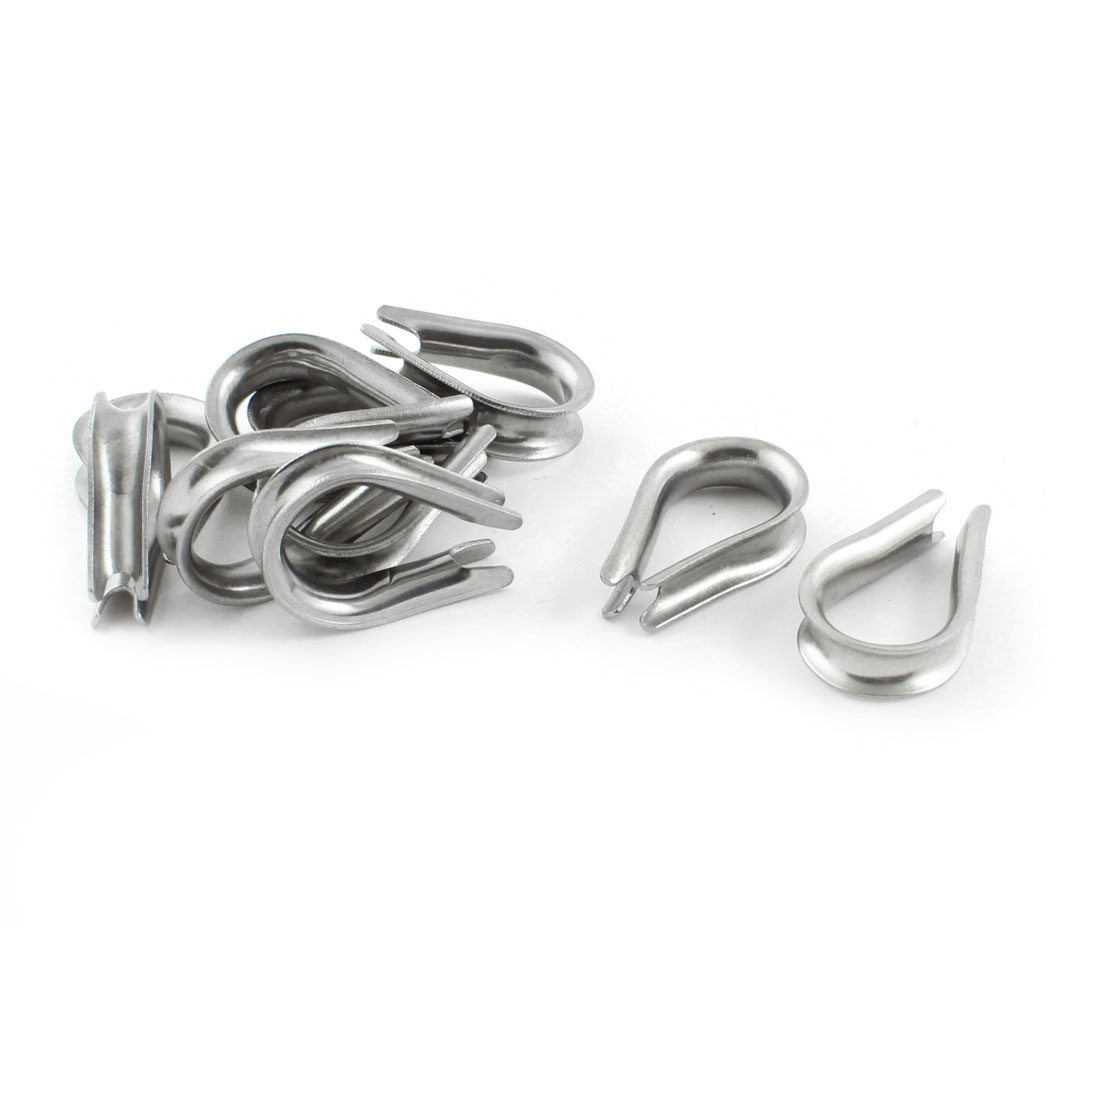 10PCS Silver Tone Stainless Steel Cable Thimbles for 6mm 1/4 Inch Wire Rope